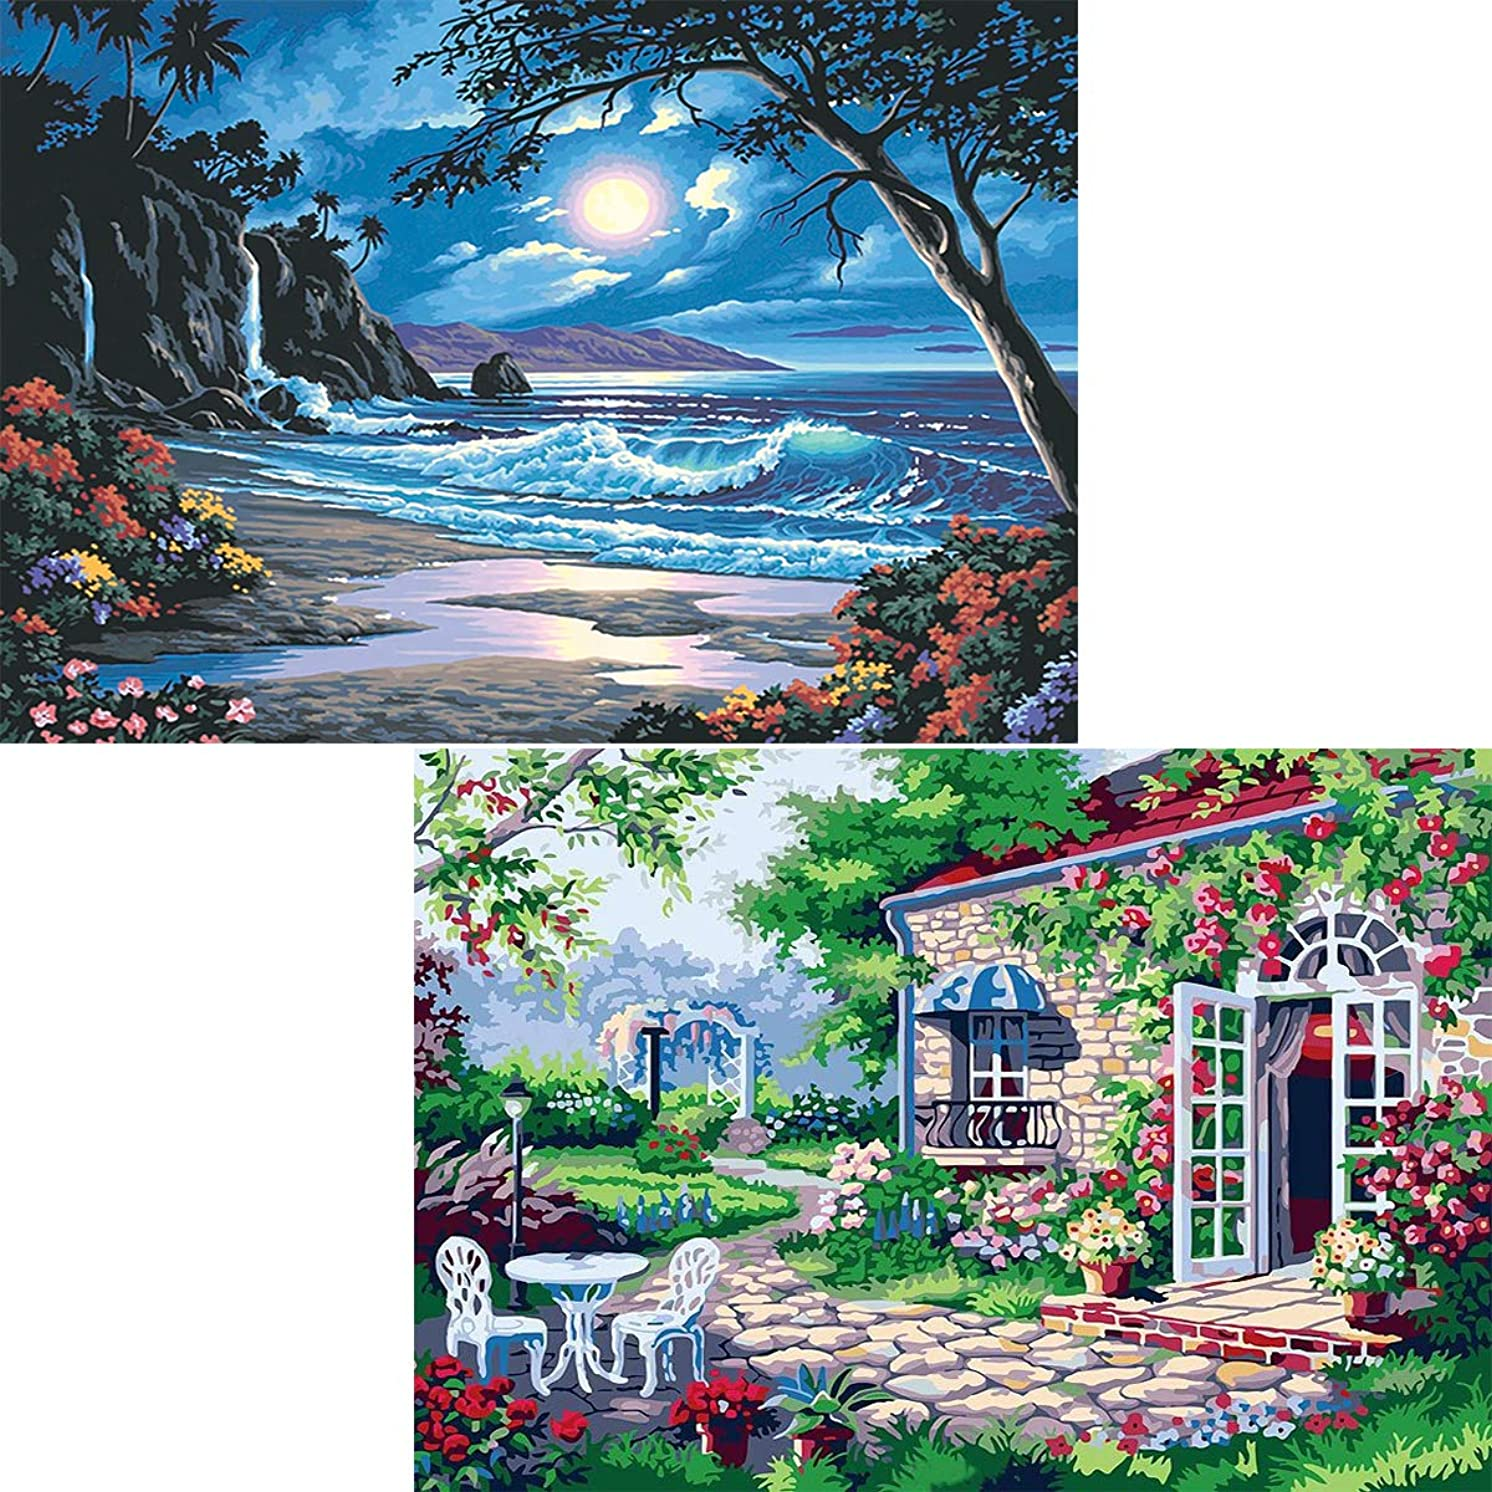 Ginfonr 5D DIY Diamond Painting Kit Moonlit Beach & Vigorous Garden for Adults Full Drill by Number Kits, Summer Landscape Paint with Diamonds Embroidery Rhinestone Cross Stitch Decor (12 x 12 inch)